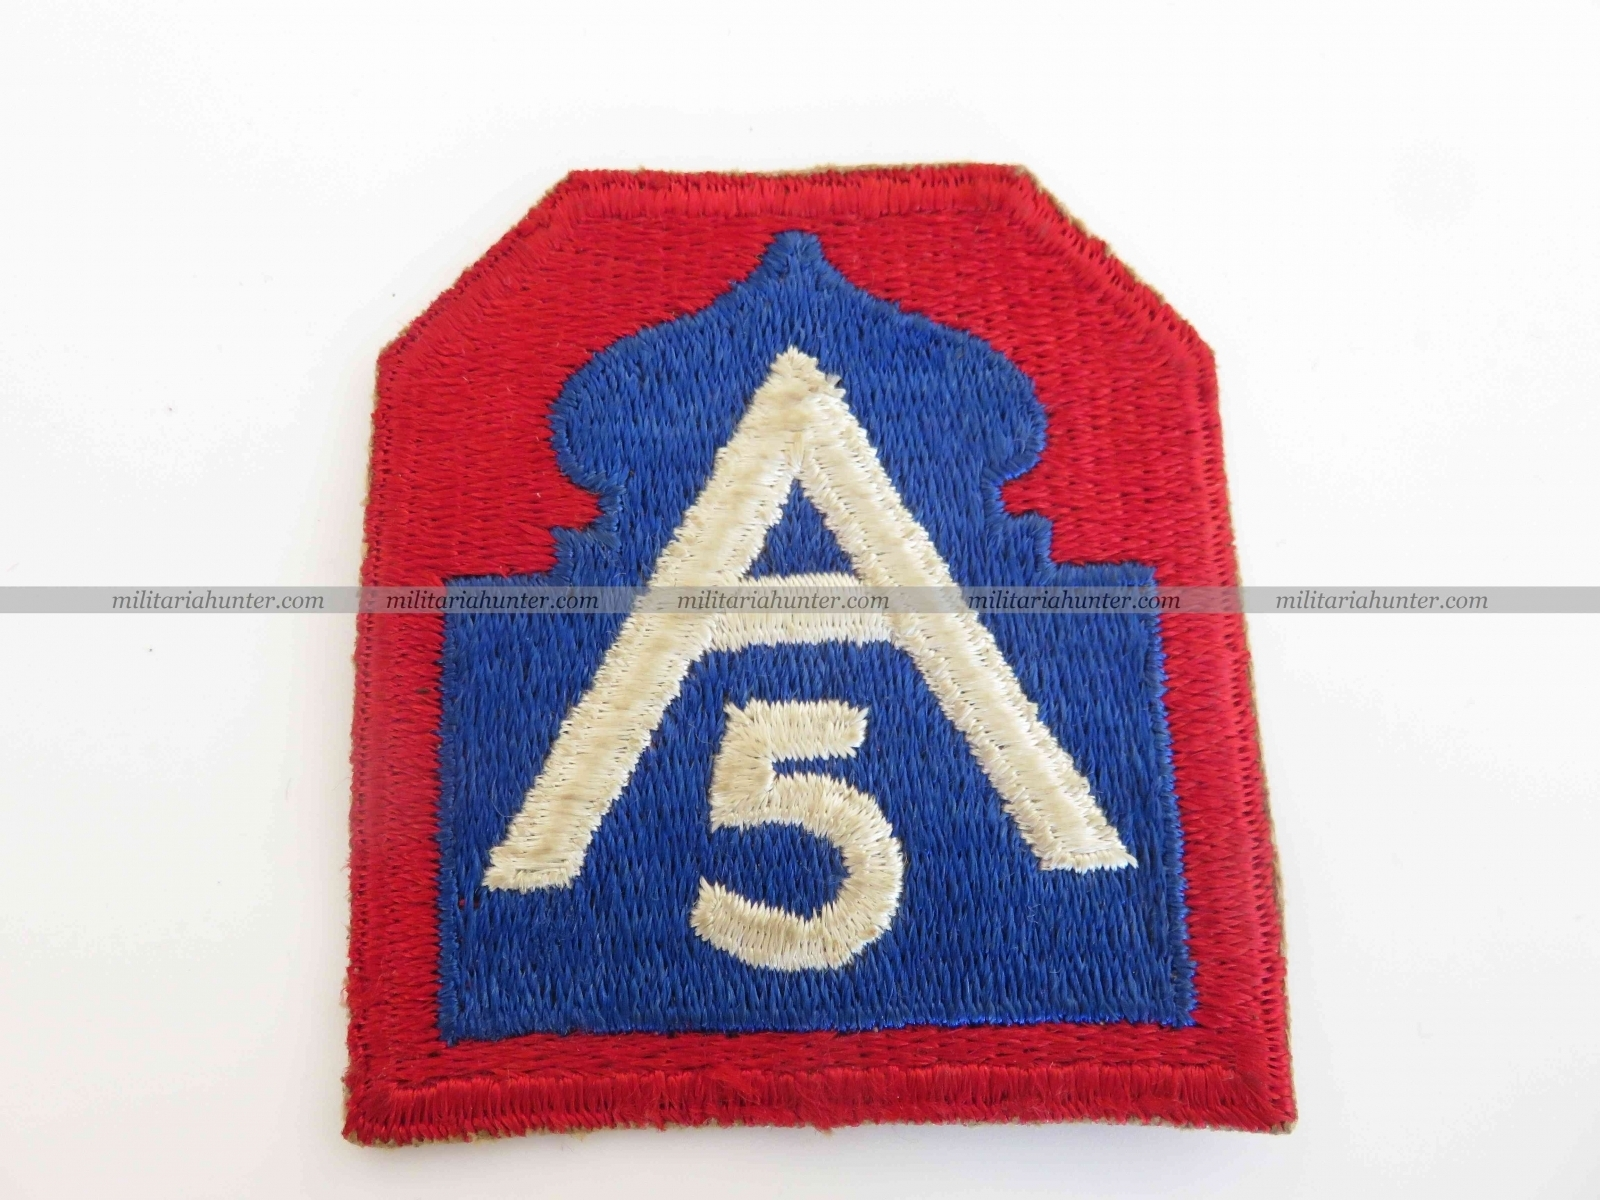 militaria : 5th Army patch - post war made